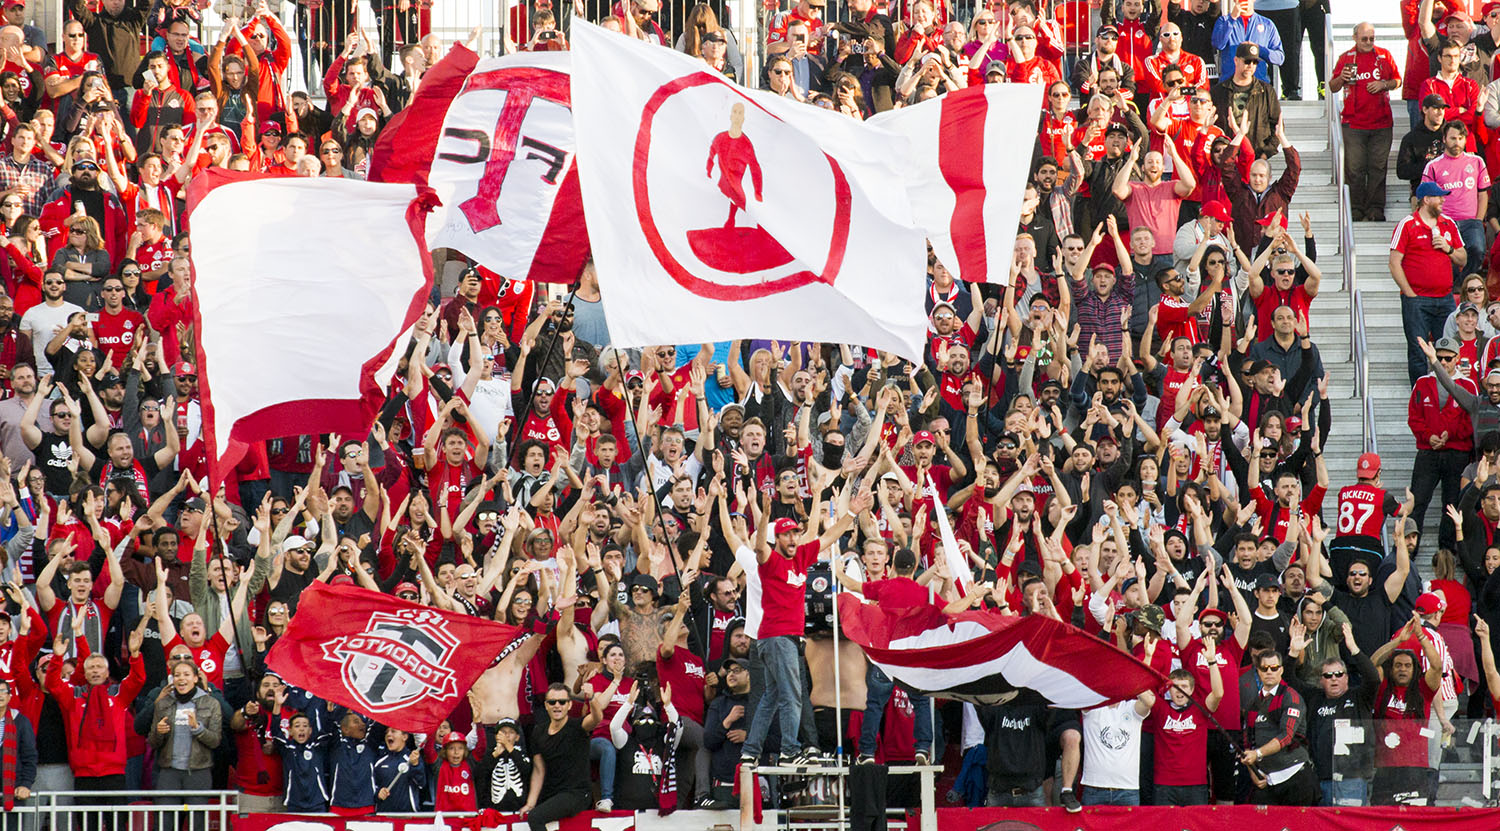 The south end supporter's section goes wild over a fourth goal at BMO Field against the San Jose Earthquakes. Image by Dennis Marciniak of denMAR Media.